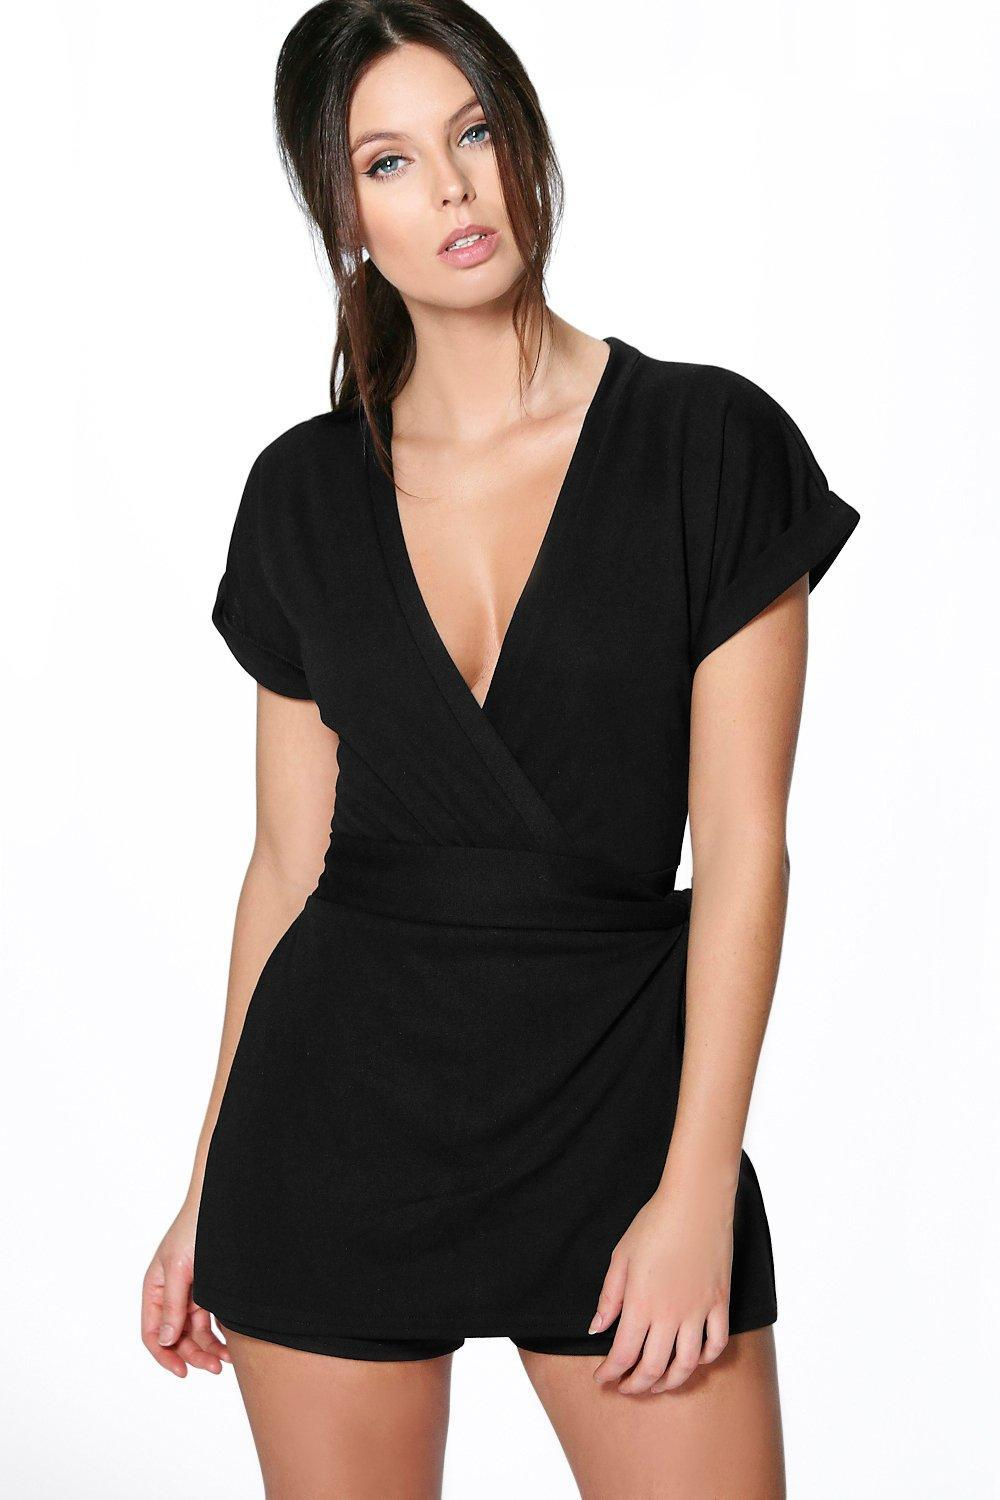 Structured Wrap Belted Ponte Playsuit Stone - neckline: low v-neck; pattern: plain; waist detail: flattering waist detail; length: short shorts; predominant colour: black; occasions: evening; fit: body skimming; fibres: polyester/polyamide - stretch; sleeve length: short sleeve; sleeve style: standard; style: playsuit; pattern type: fabric; texture group: jersey - stretchy/drapey; season: s/s 2016; wardrobe: event